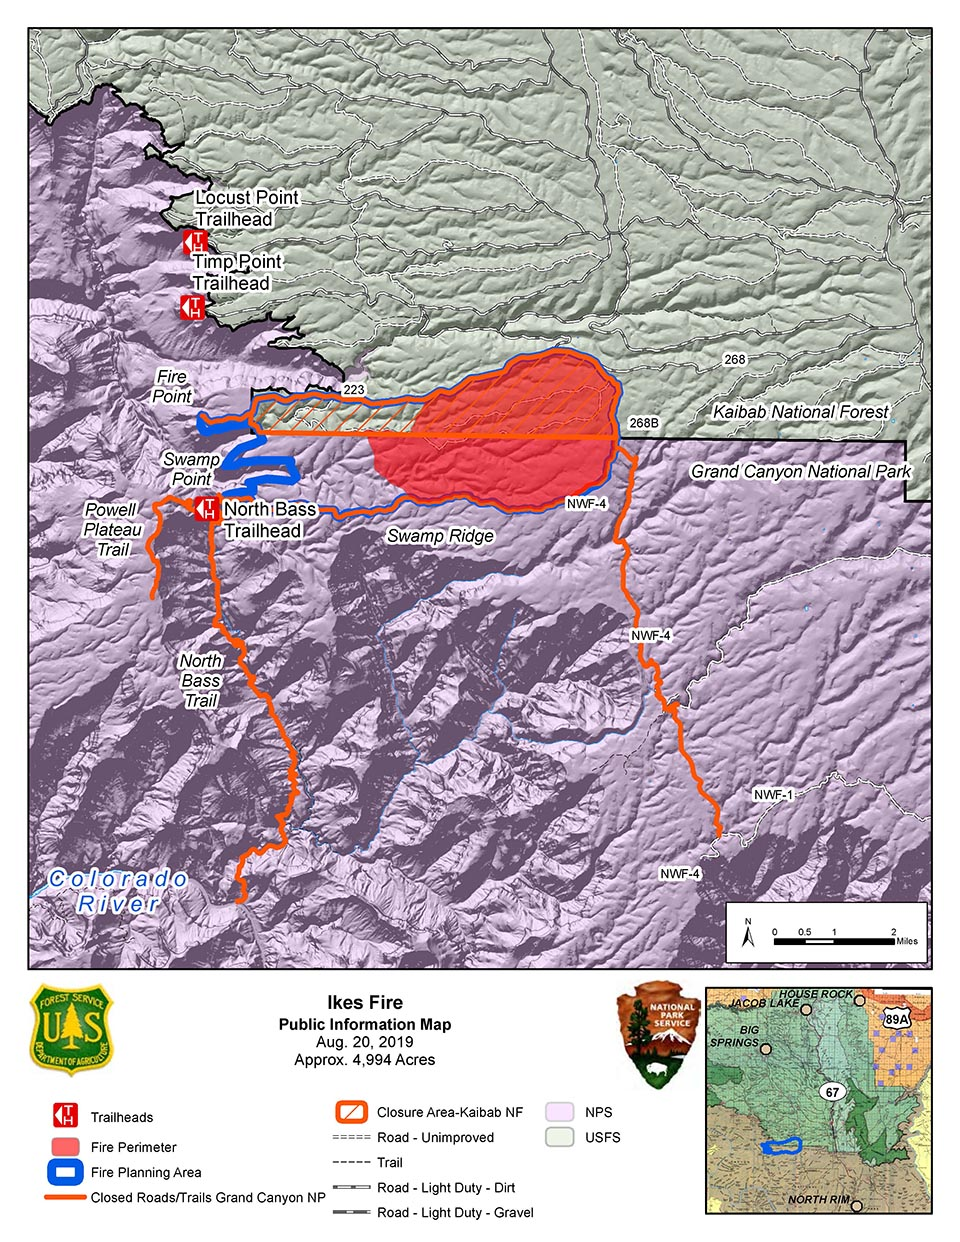 Ikes PIO Map 082019 showing the Ikes Fire road and trail closures and containment area in relation to the north side of Grand Canyon National Park in its boundary with Kaibab Nat. Forest